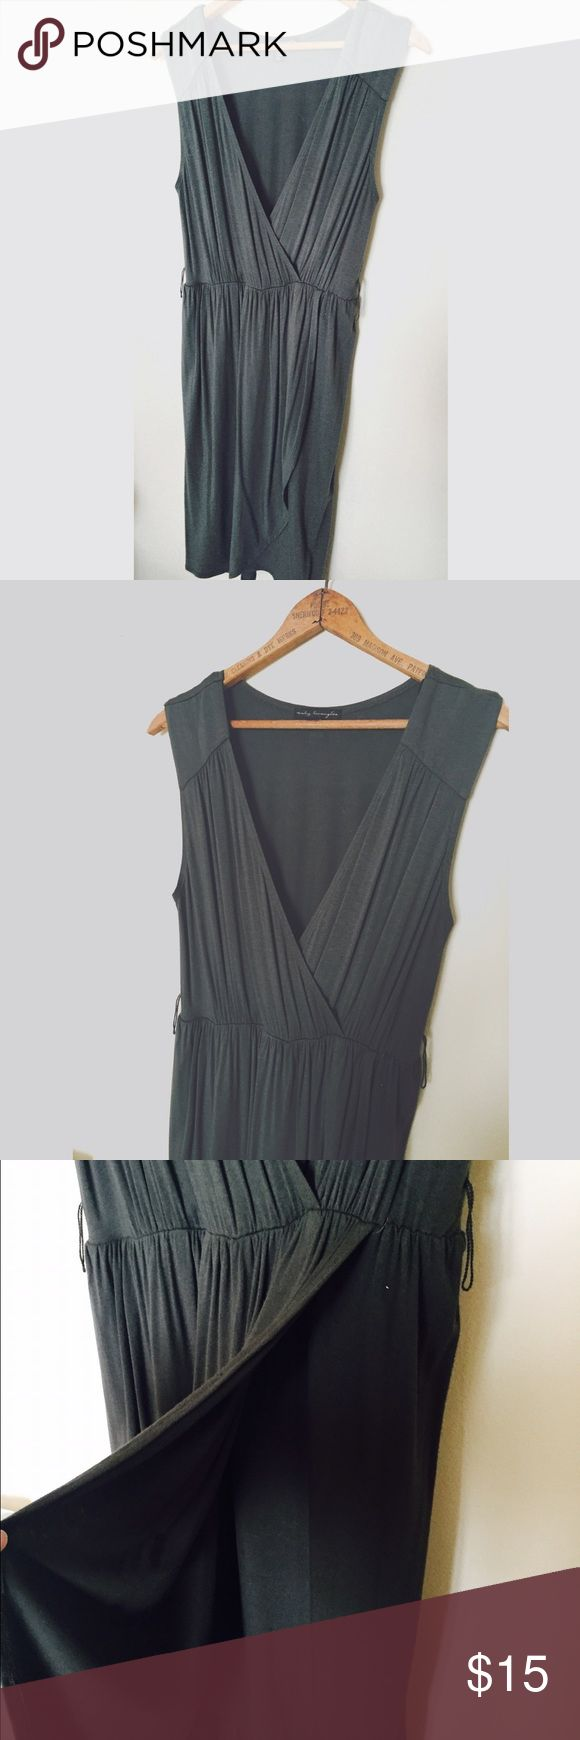 Army Green Dress So comfortable and flattering with a v-neck top and a wrap like skirt. It has an elastic under the bust. Does not come with the belt. City Triangles Dresses Mini